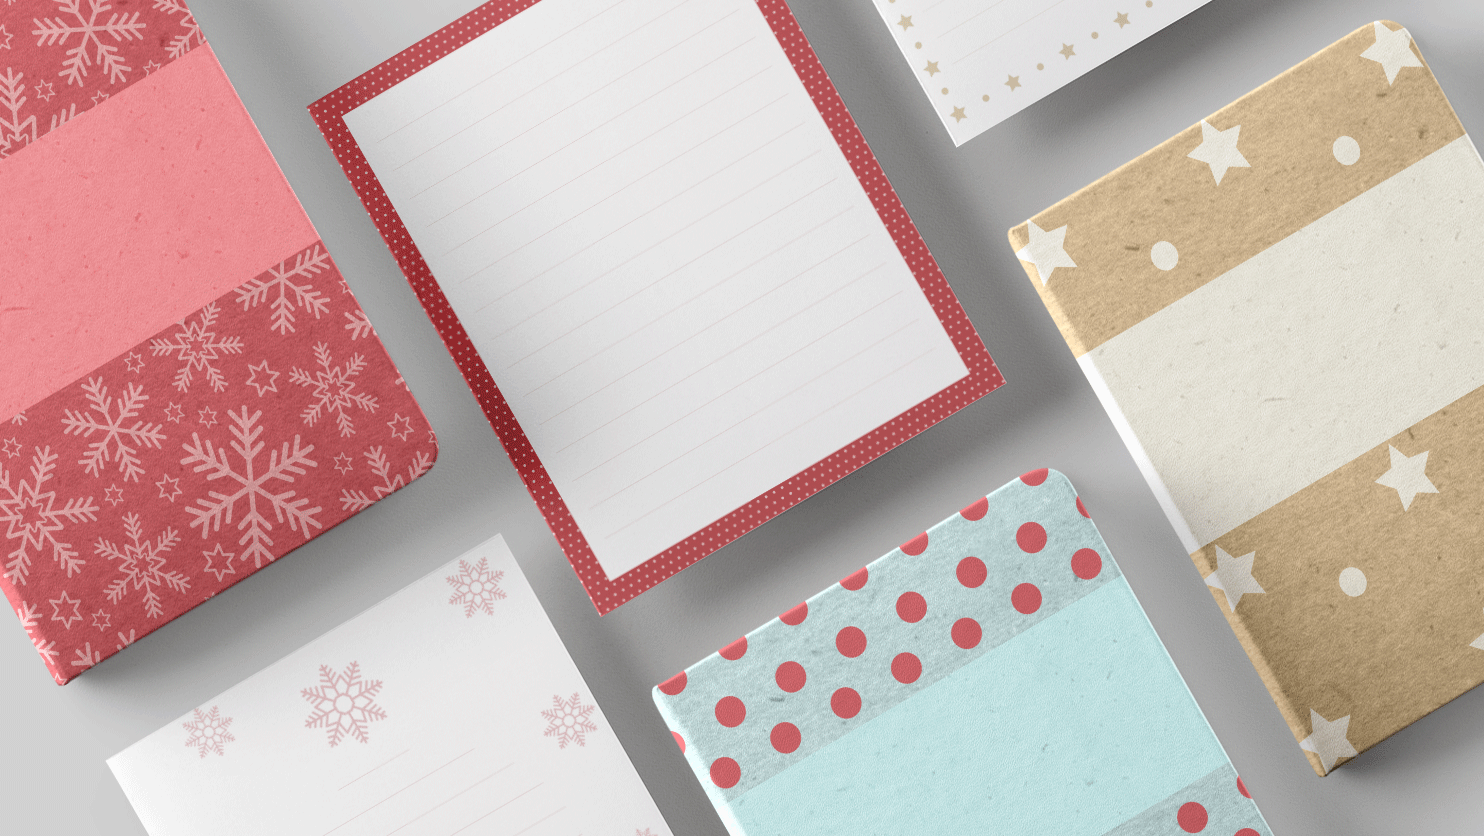 Holiday 2018 Papers and Covers in Noteshelf 2